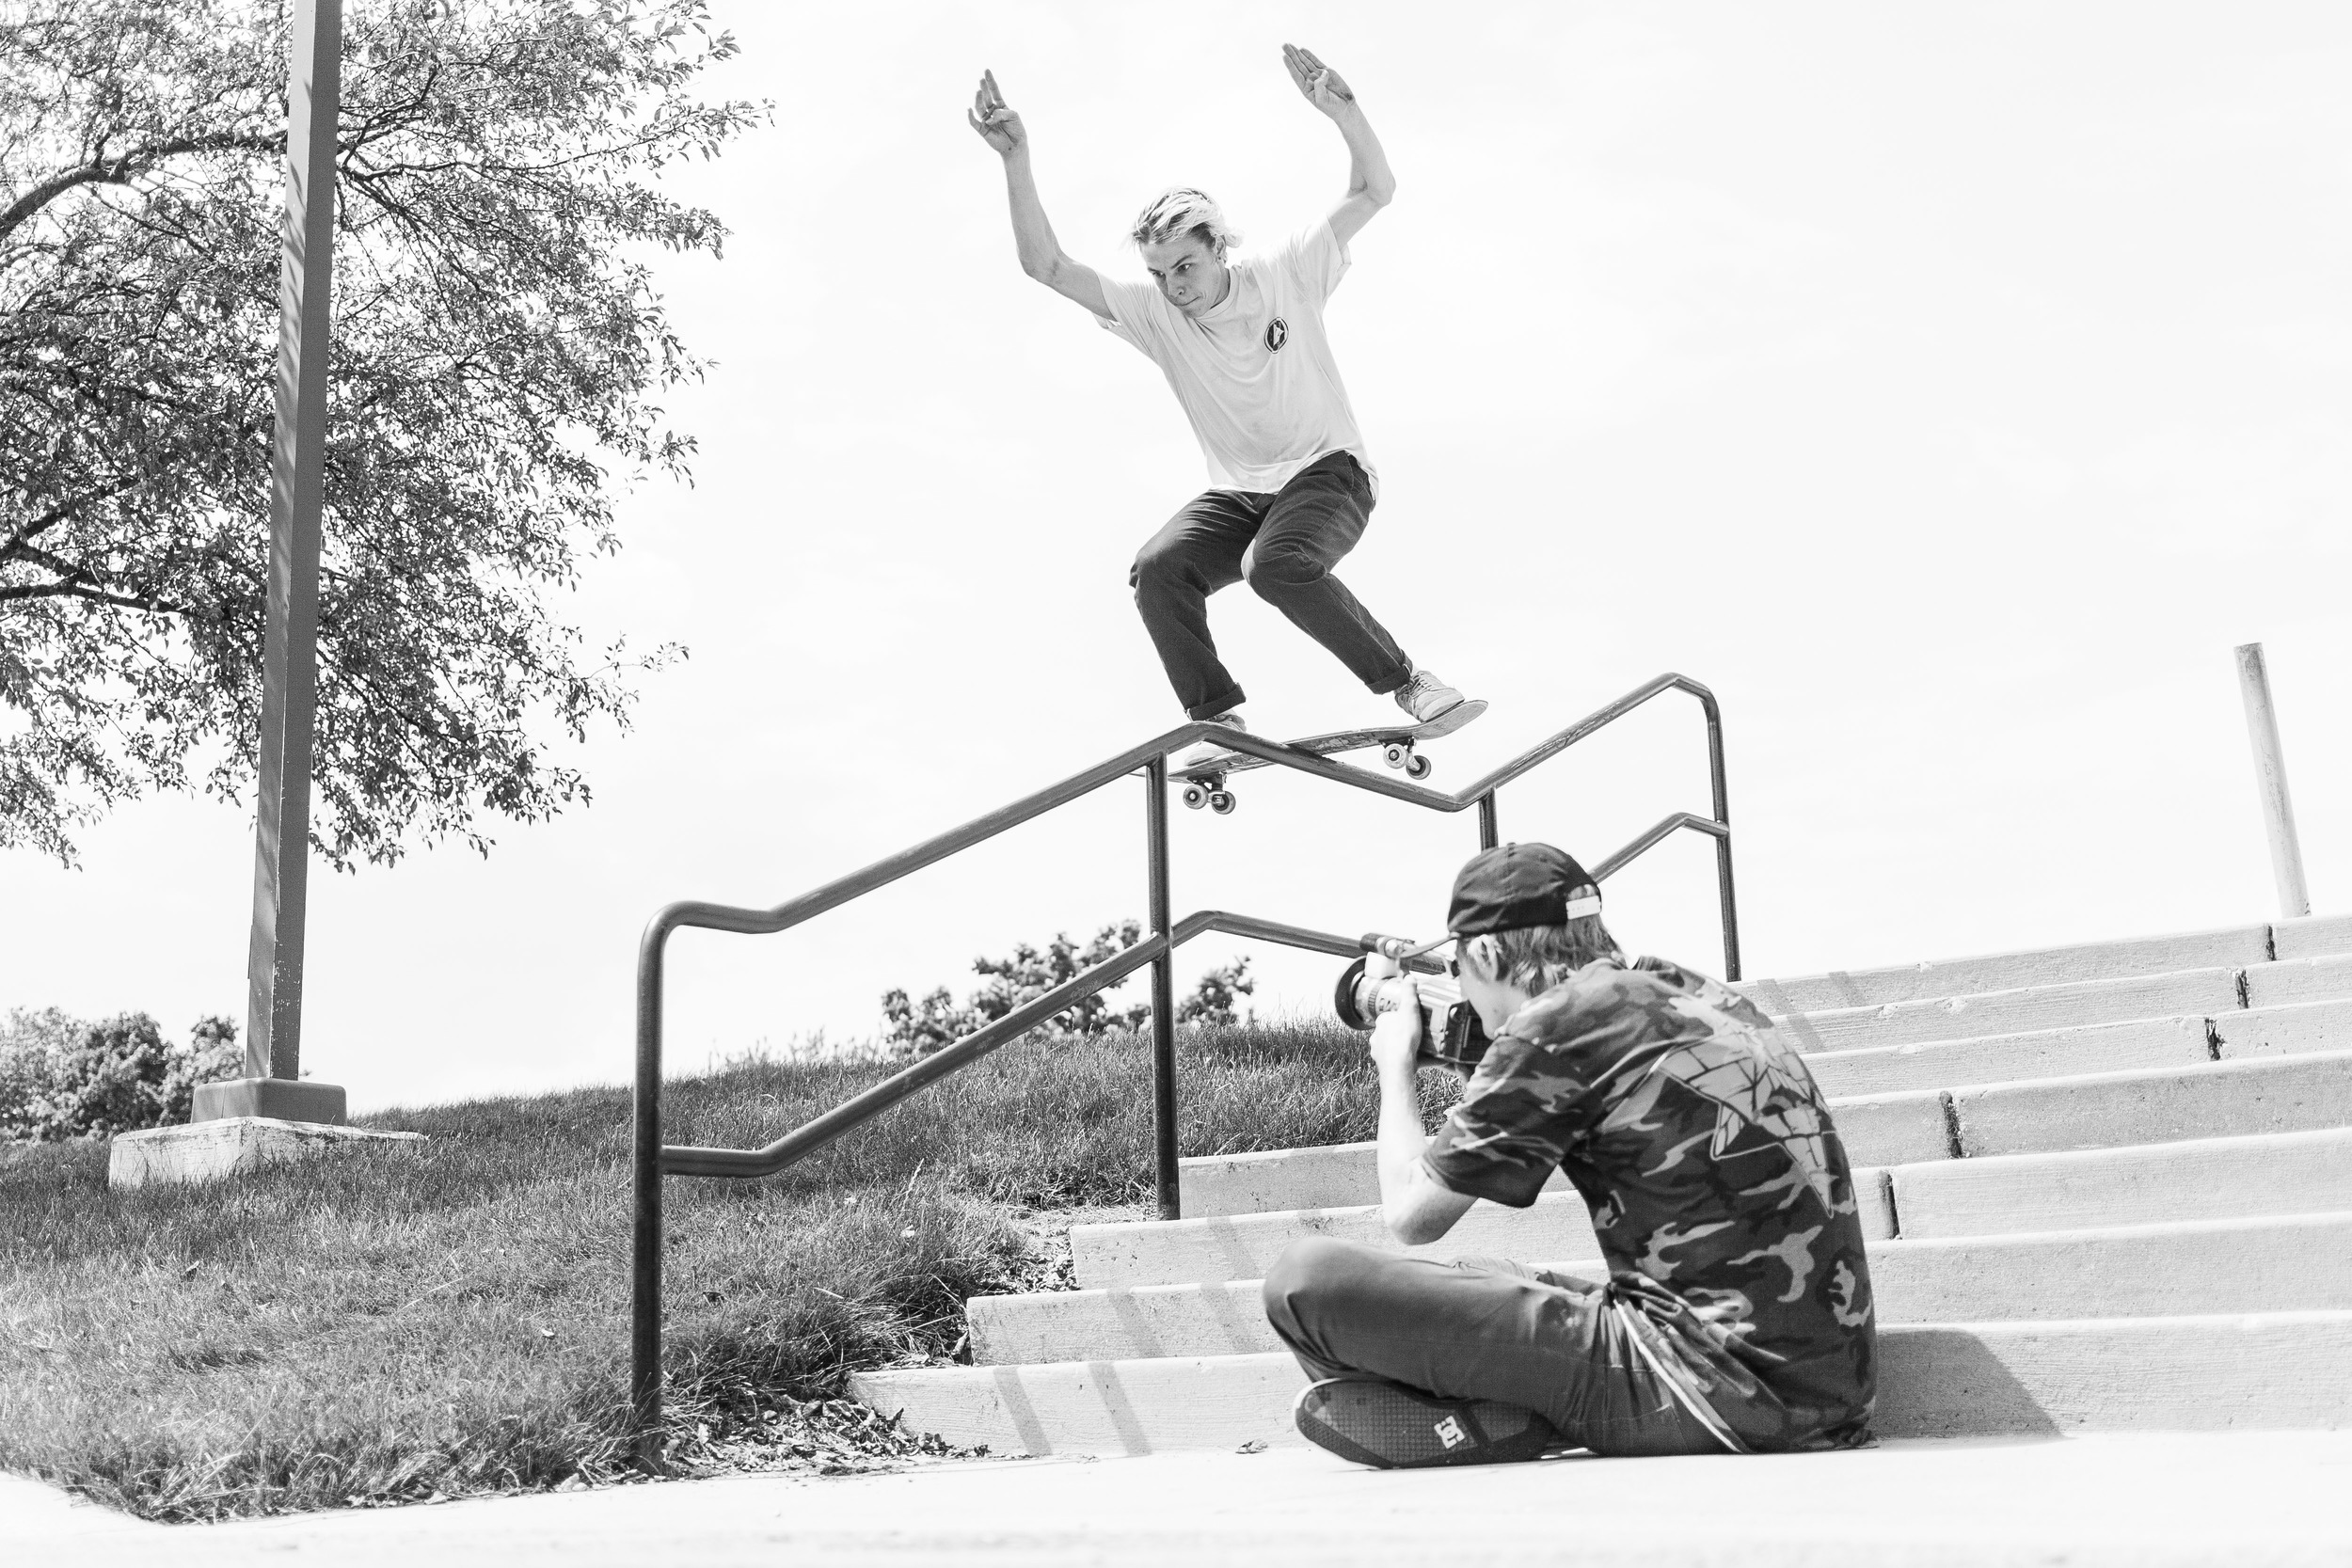 Aaron Goure // Boardslide // Grand Rapids, MI